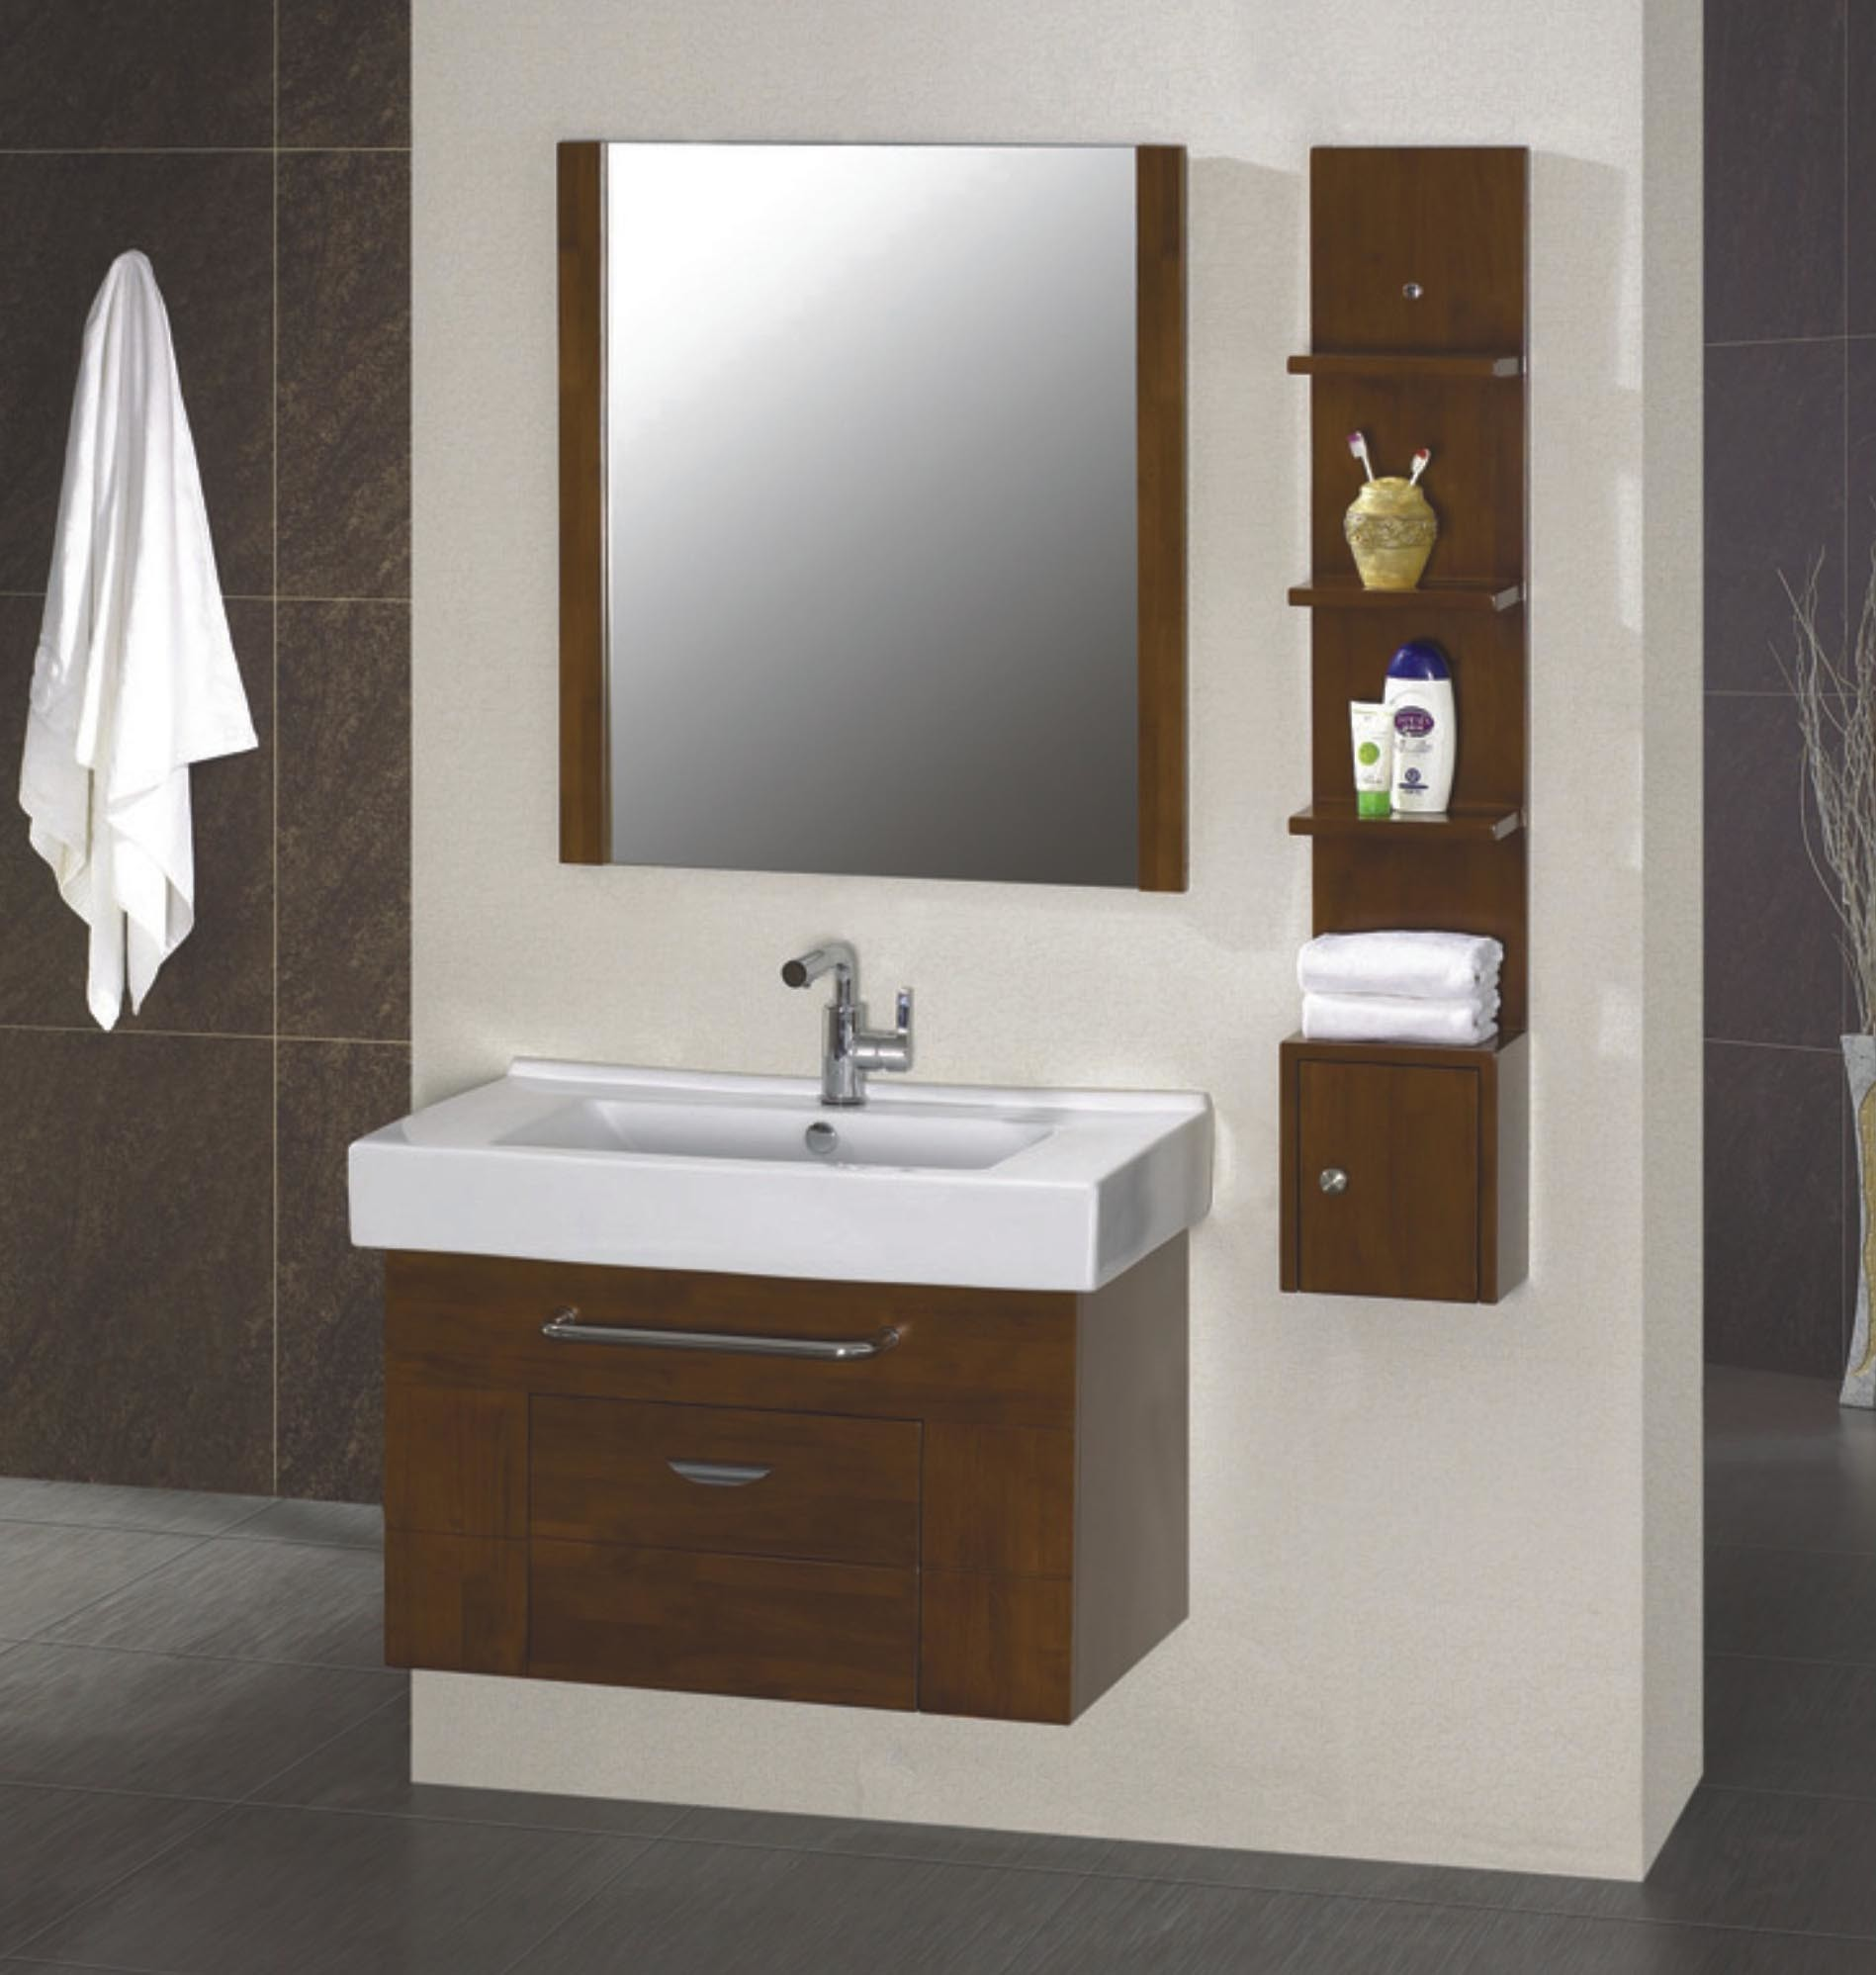 Solid wood bathroom furniture at the galleria for Bathroom furniture design ideas